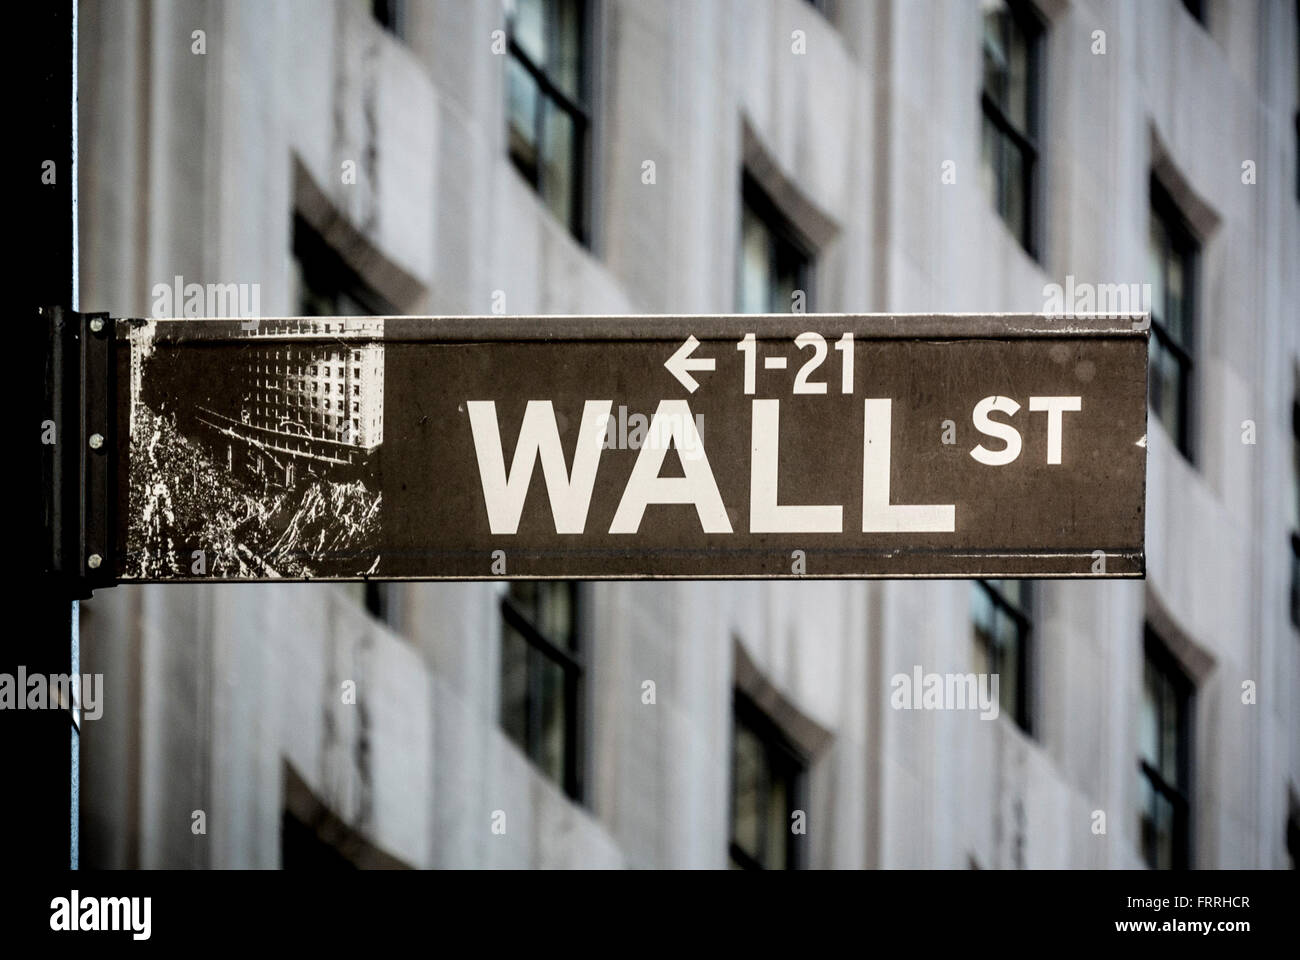 Wall Street sign, Lower Manhattan, New york City, USA. - Stock Image